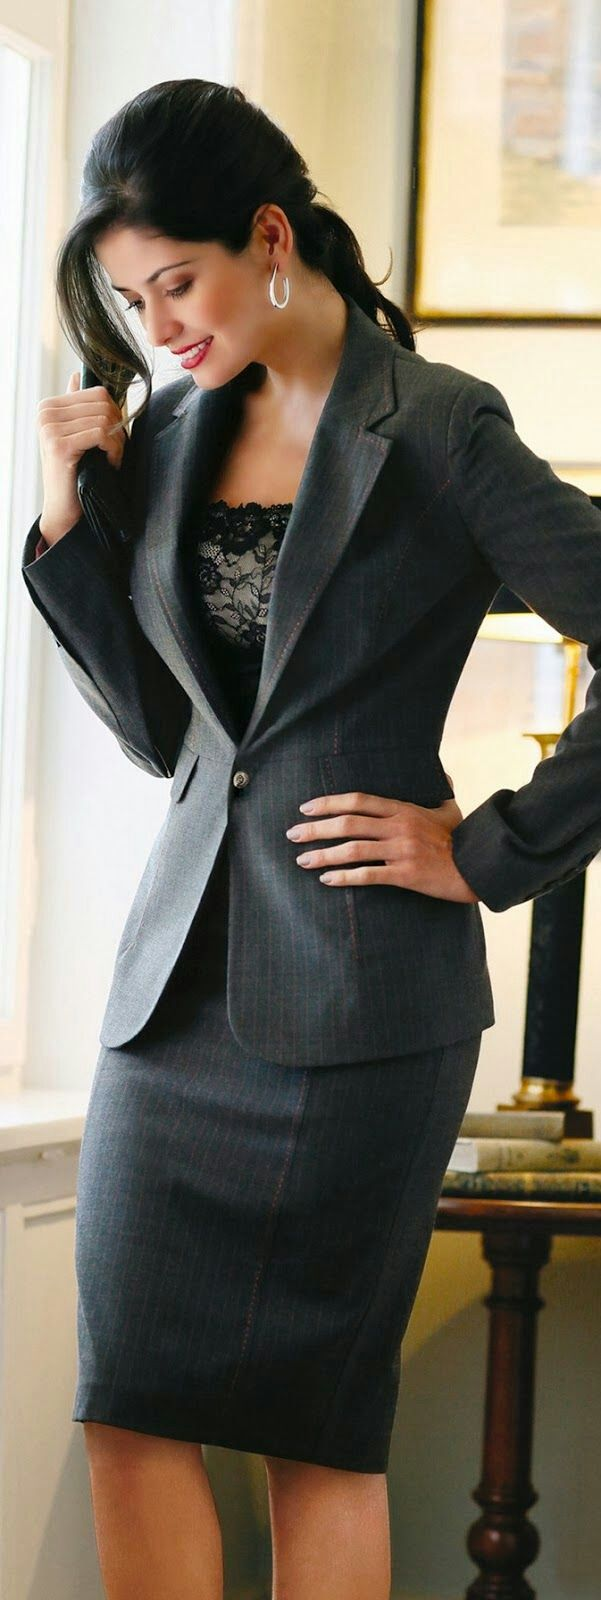 Lady CEO...Sleek and chic ♥ WI~ LadyLuxuryDesins